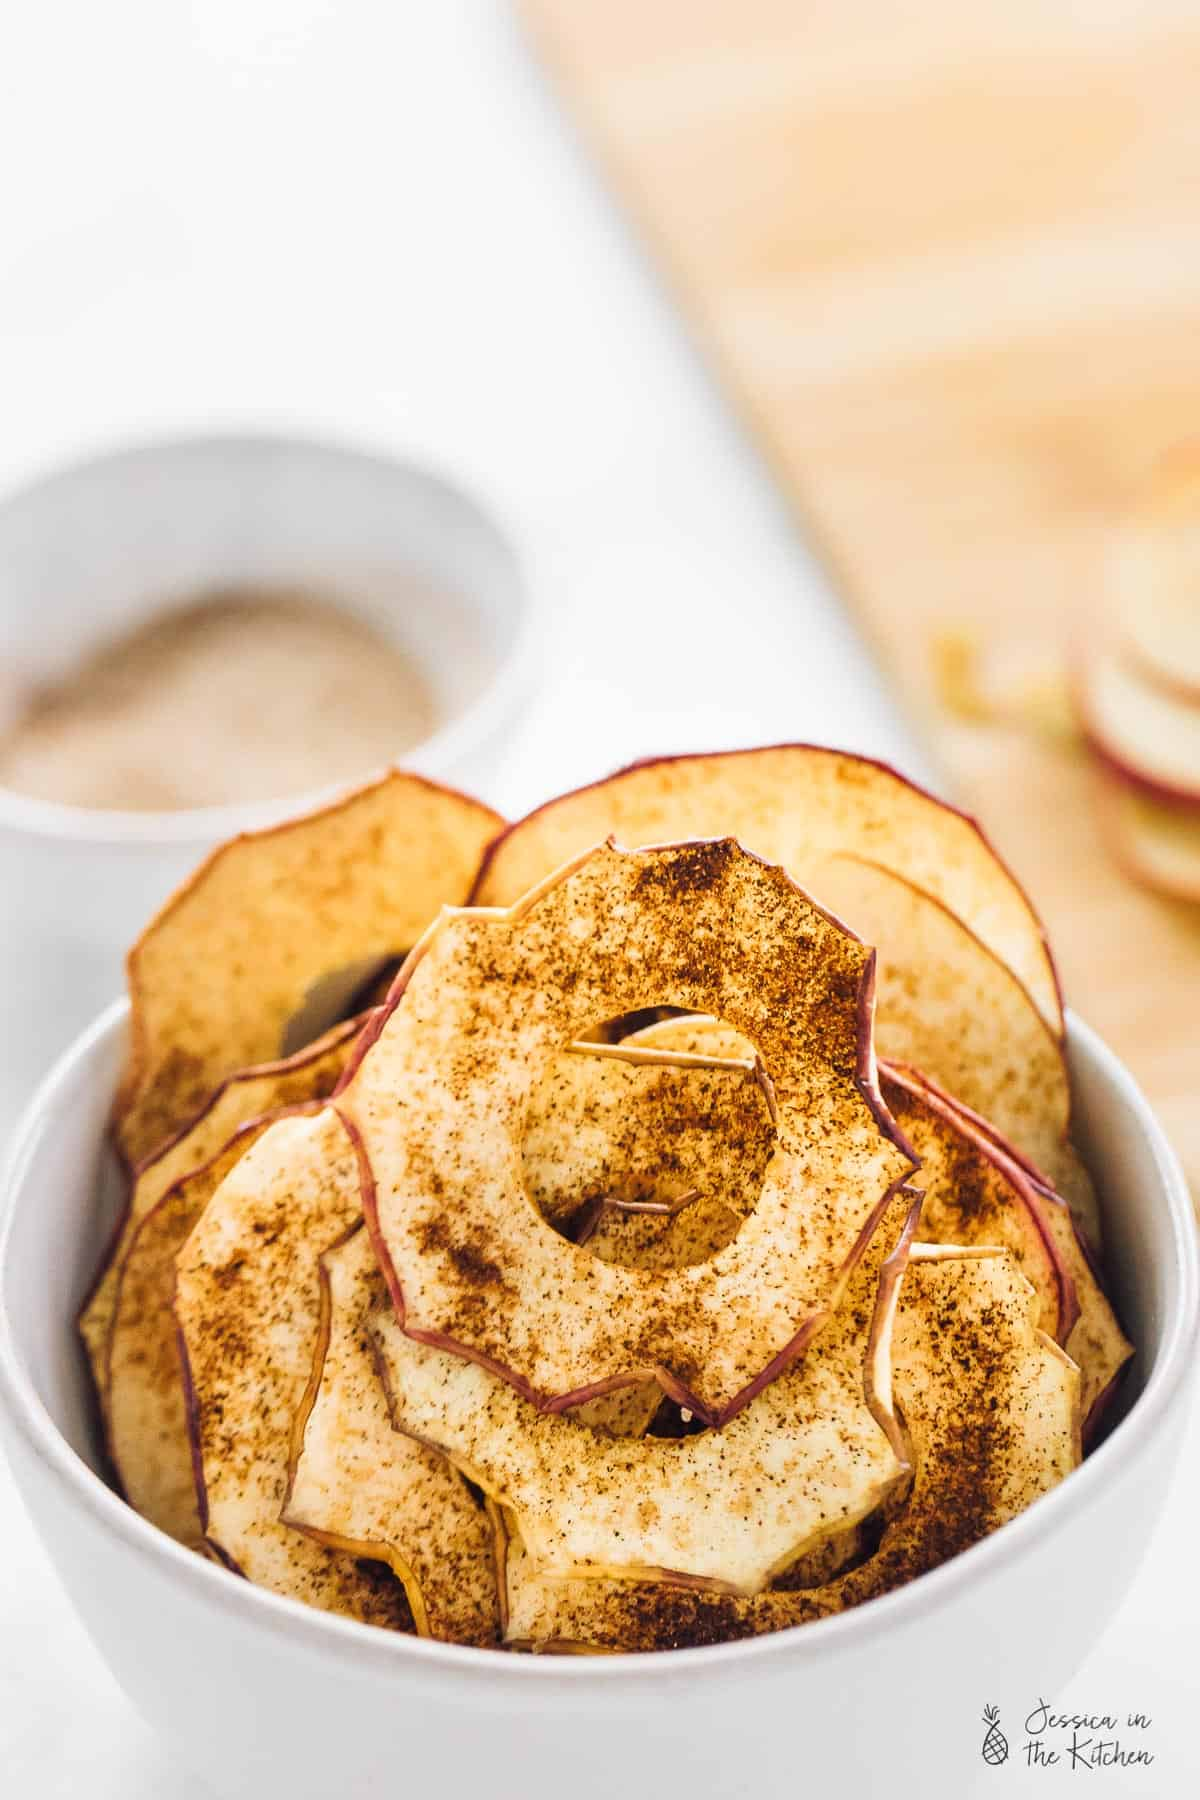 Cinnamon apple chips in a white bowl.